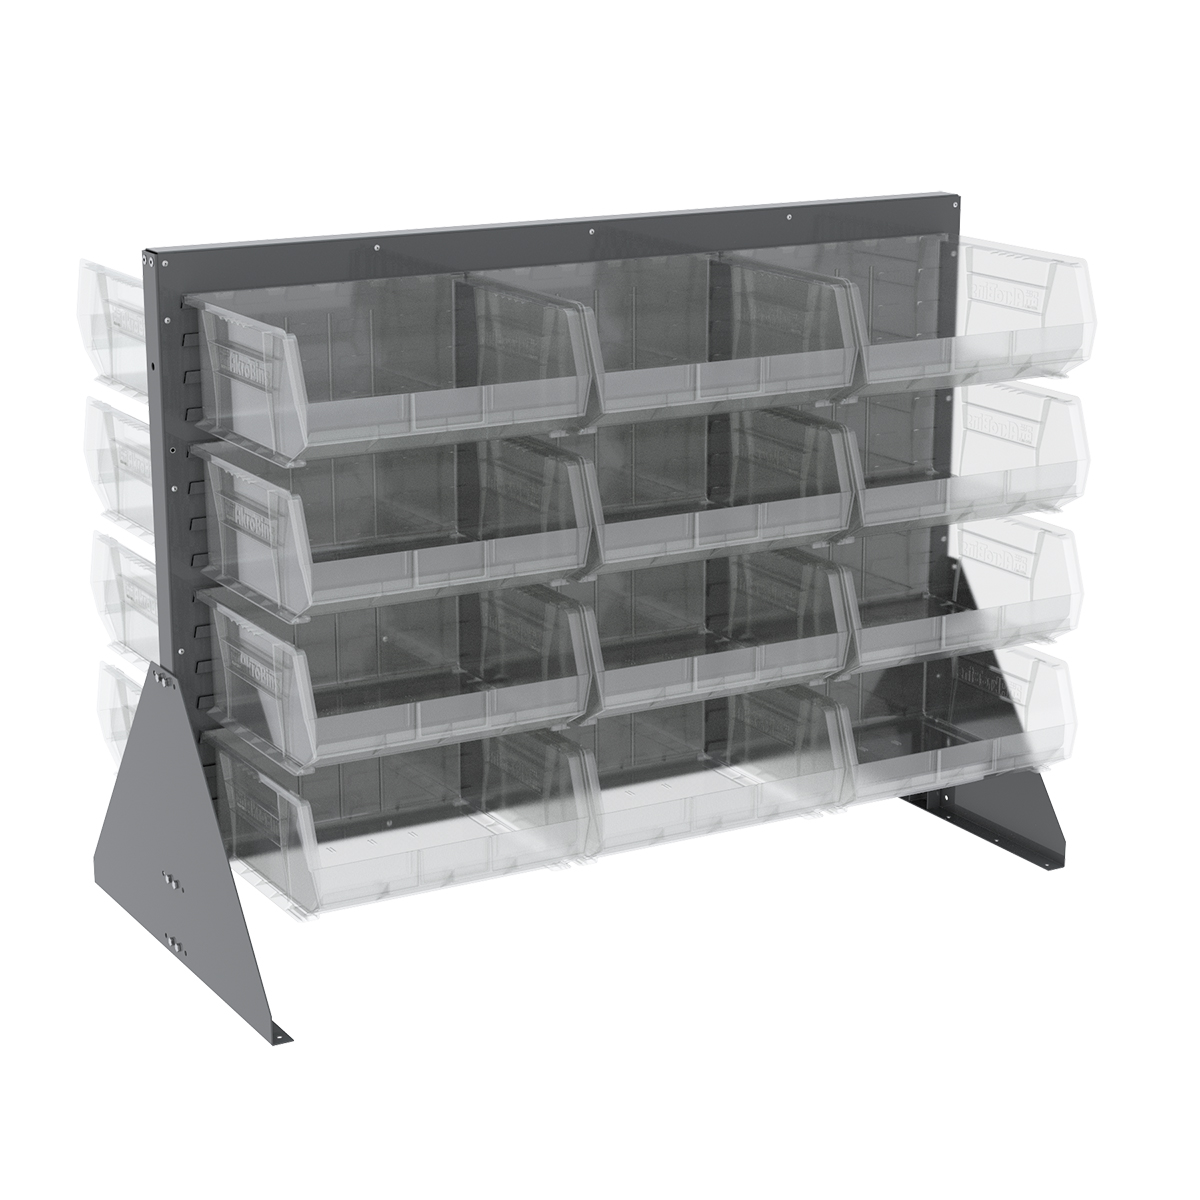 Item DISCONTINUED by Manufacturer.  Low Profile Floor Rack, 2-Sided w/ 36 AkroBins, Gray/Clear (30607GY250SC).  This item sold in carton quantities of 1.